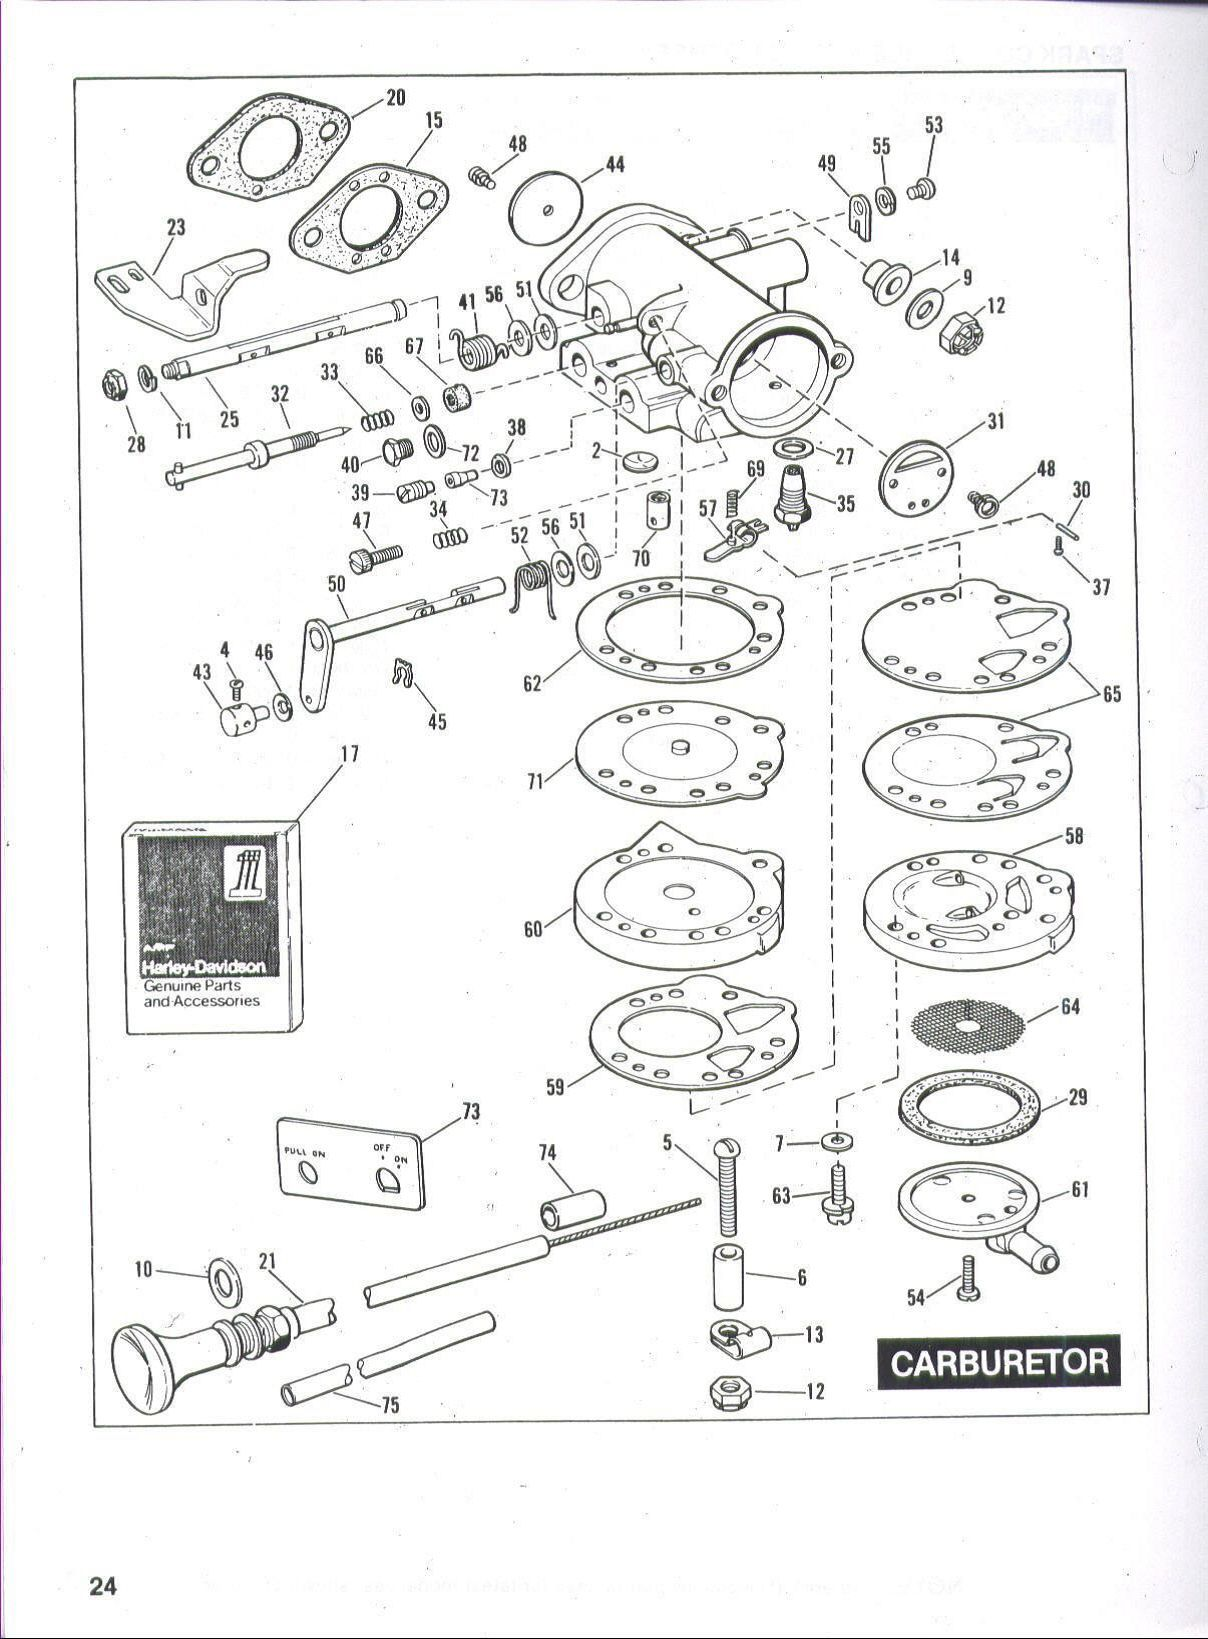 harley davidson golf cart carburetor diagram [ 1208 x 1639 Pixel ]